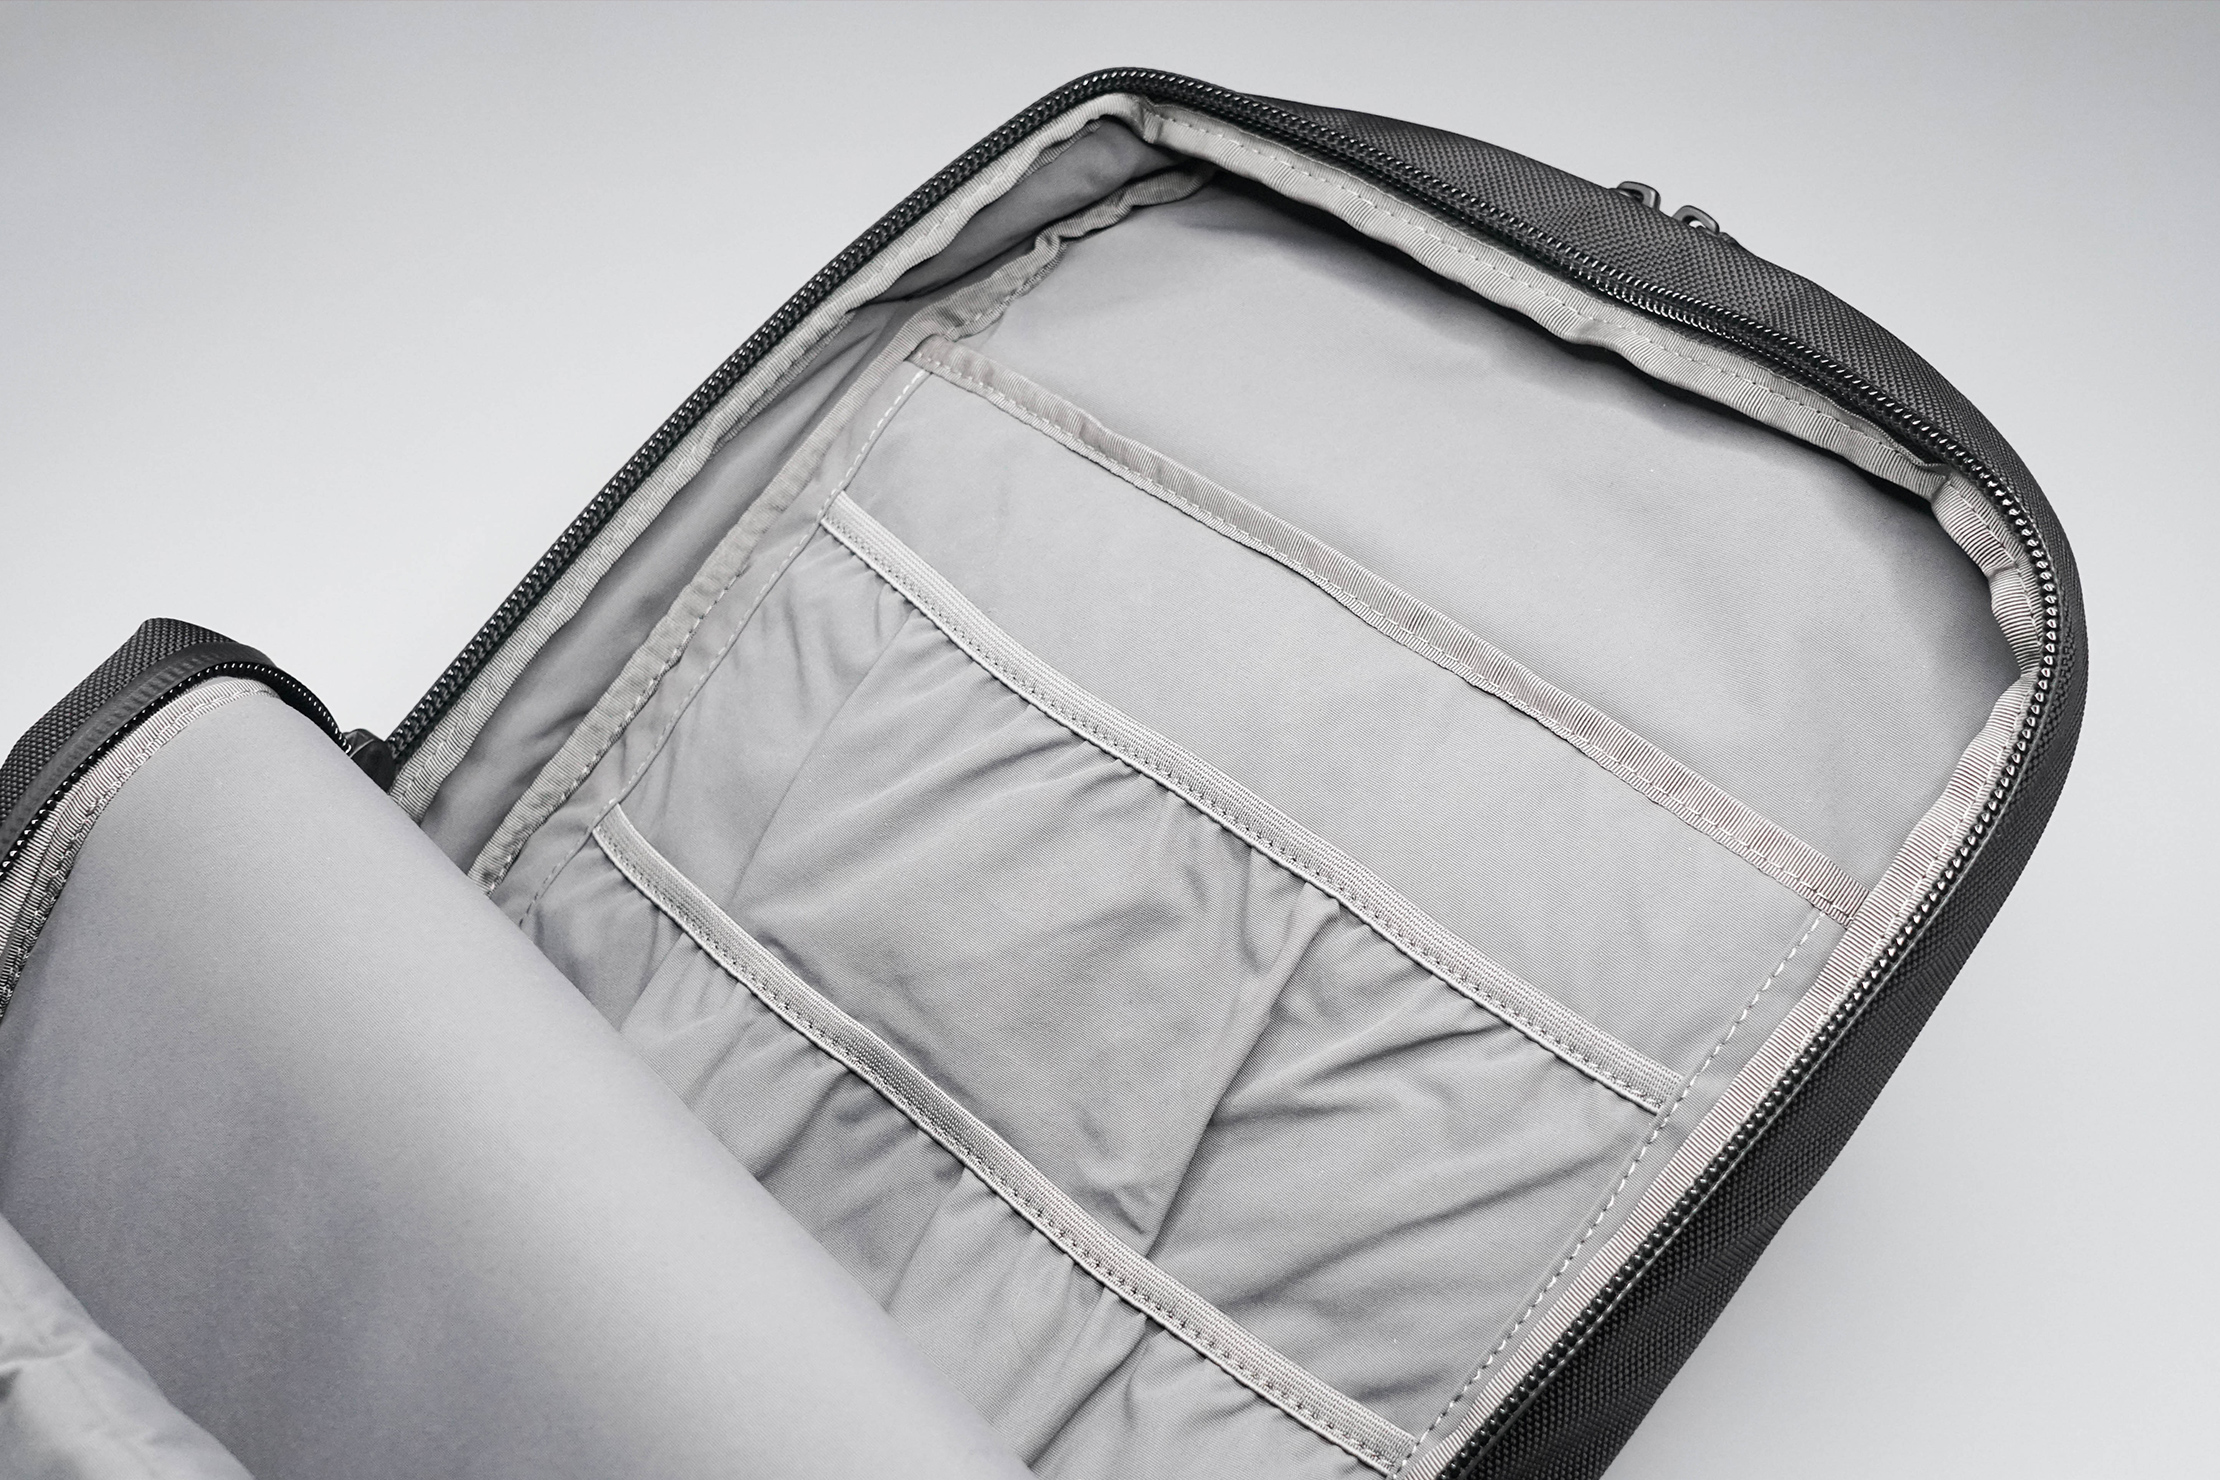 Aer Tech Pack 2 Main Compartment Sleeves